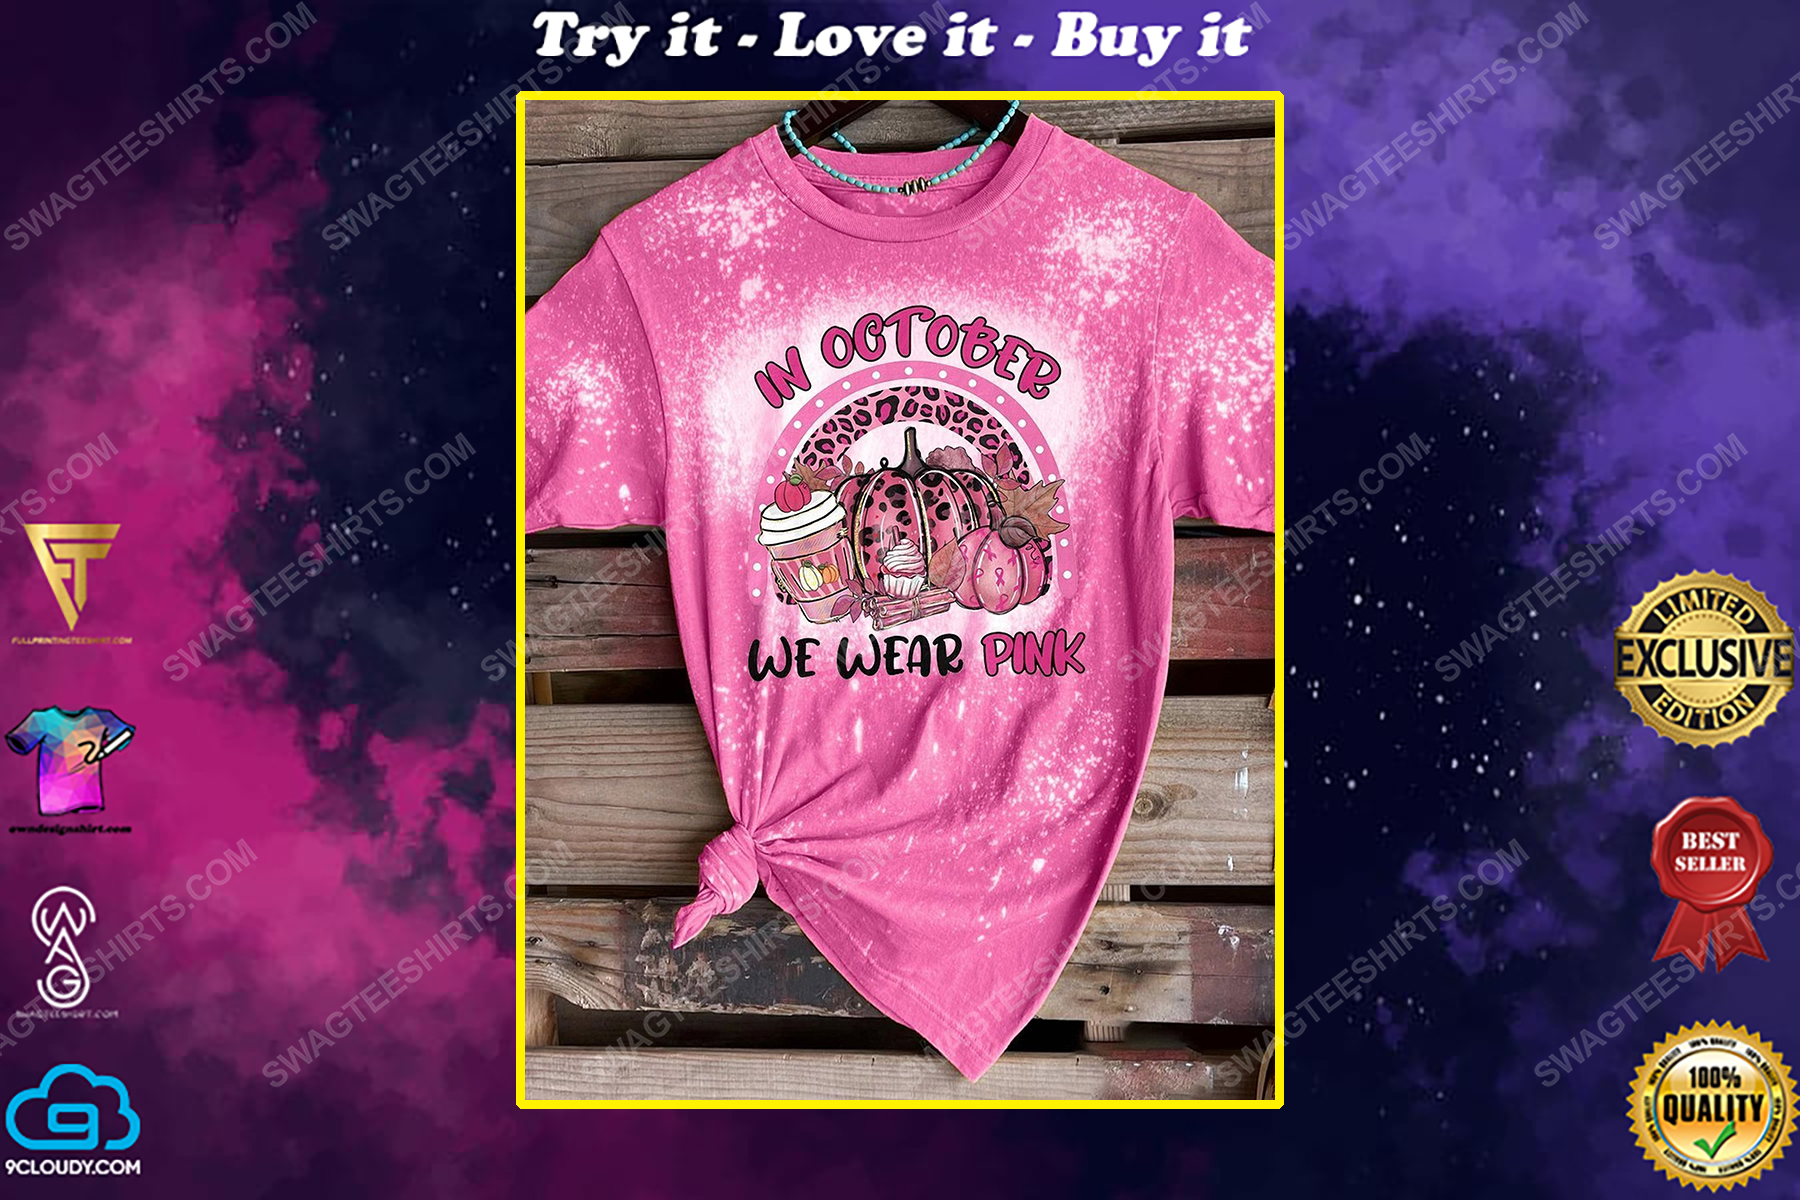 Breast cancer awareness in october we wear pink pumpkin and coffee bleached shirt